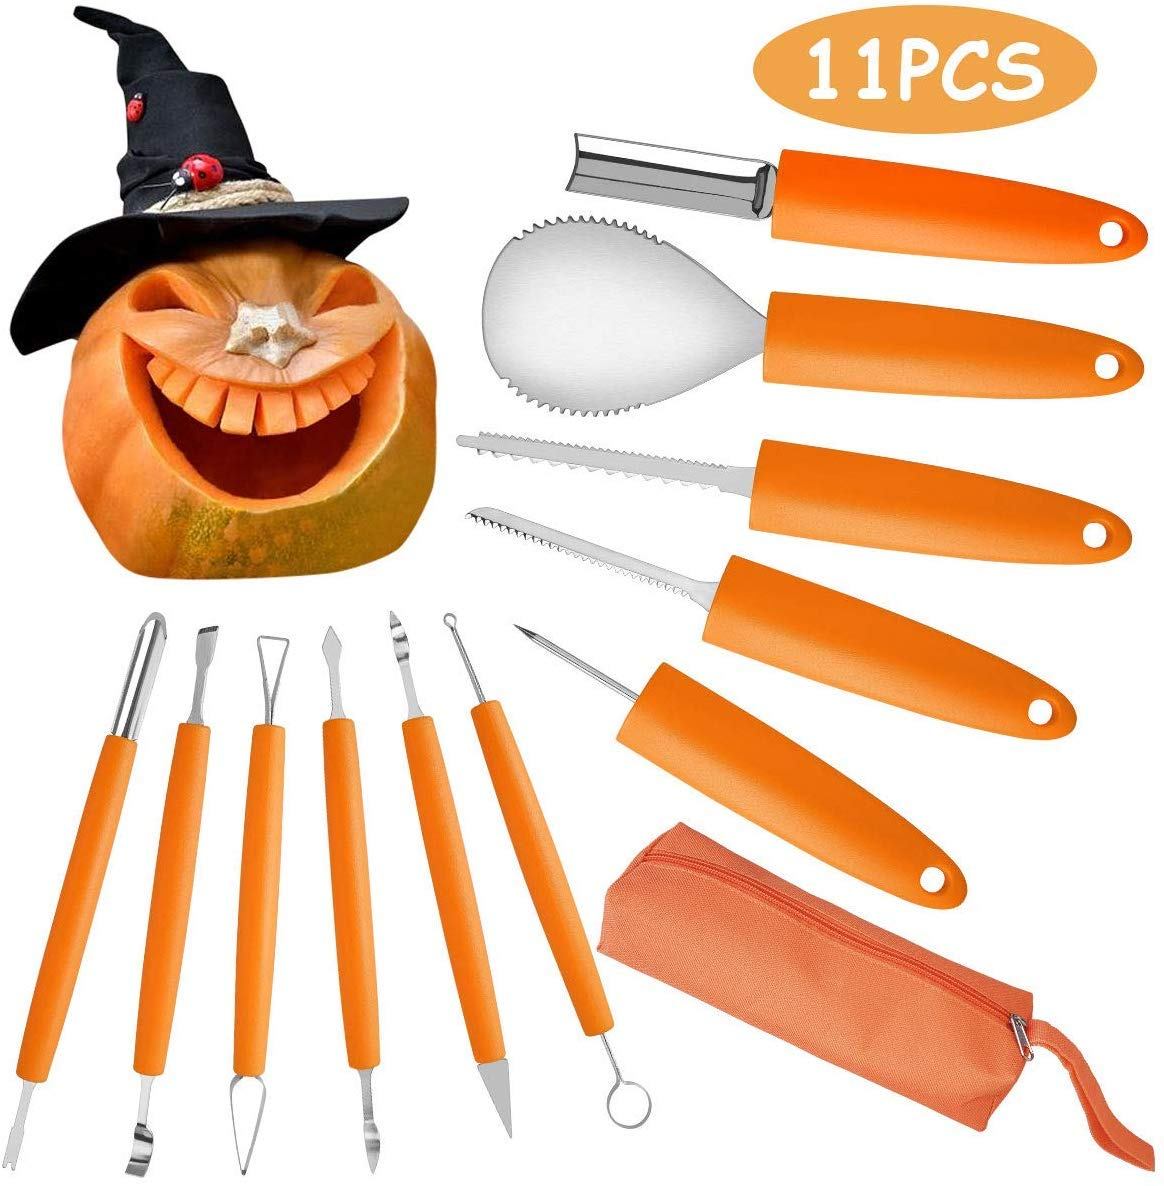 Pumpkin Carving Kit 11 Pieces stainless Steel Pumpkin Tools For Halloween Creative Carving by Cuts, Scoops, Scrapers, Saws, Loops by Danmo